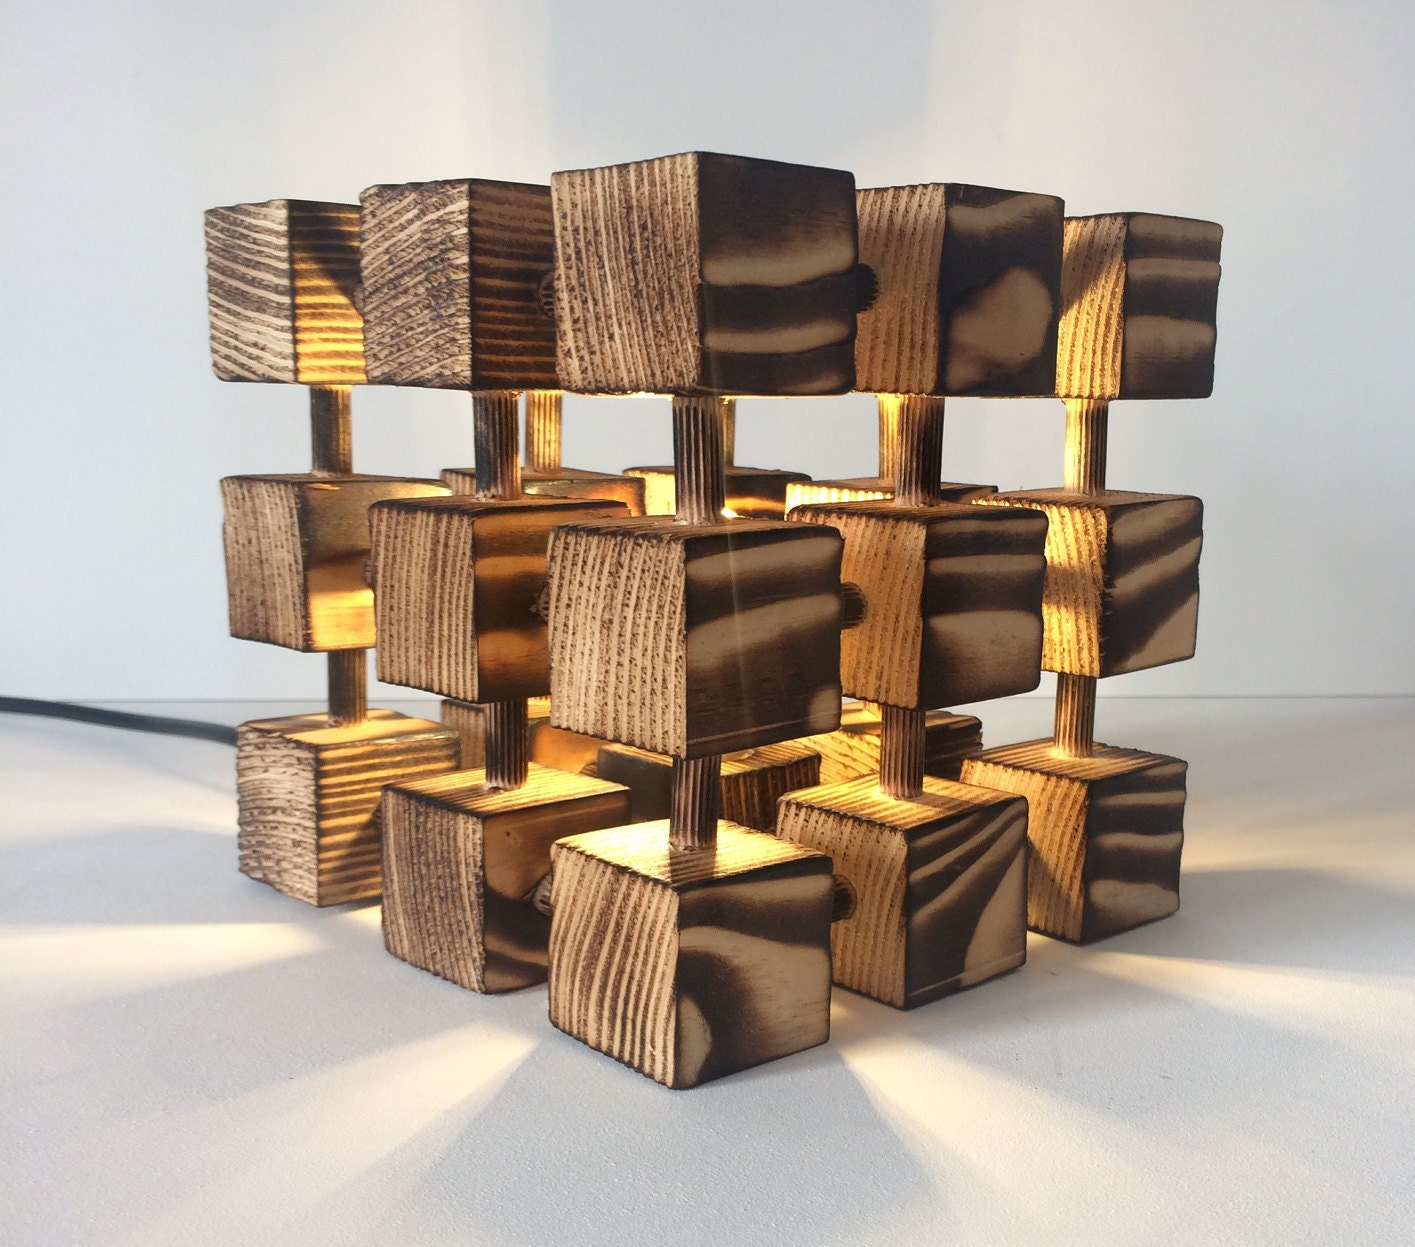 Unusual wooden table lamp square cube molecular molecule desk unusual wooden table lamp square cube molecular molecule desk light burnt wood abstract designer handmade feature mozeypictures Images